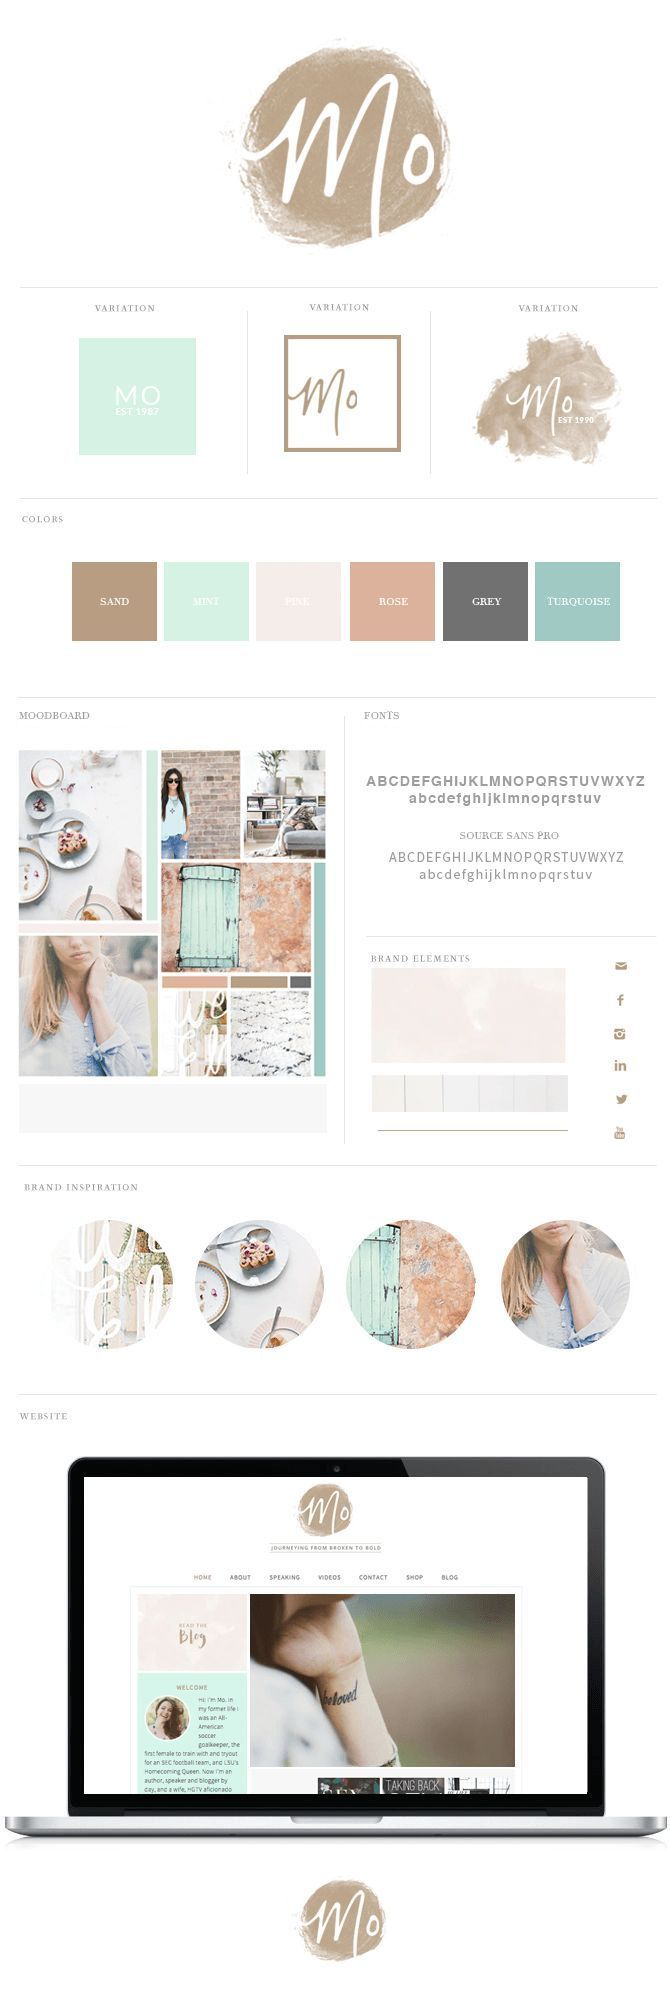 Brand + Website Design for @Mo Isom (www.moisom.com). Watercolor texture logo | Mint, Sand, Rose, Pink, Grey and Turquoise color palette.